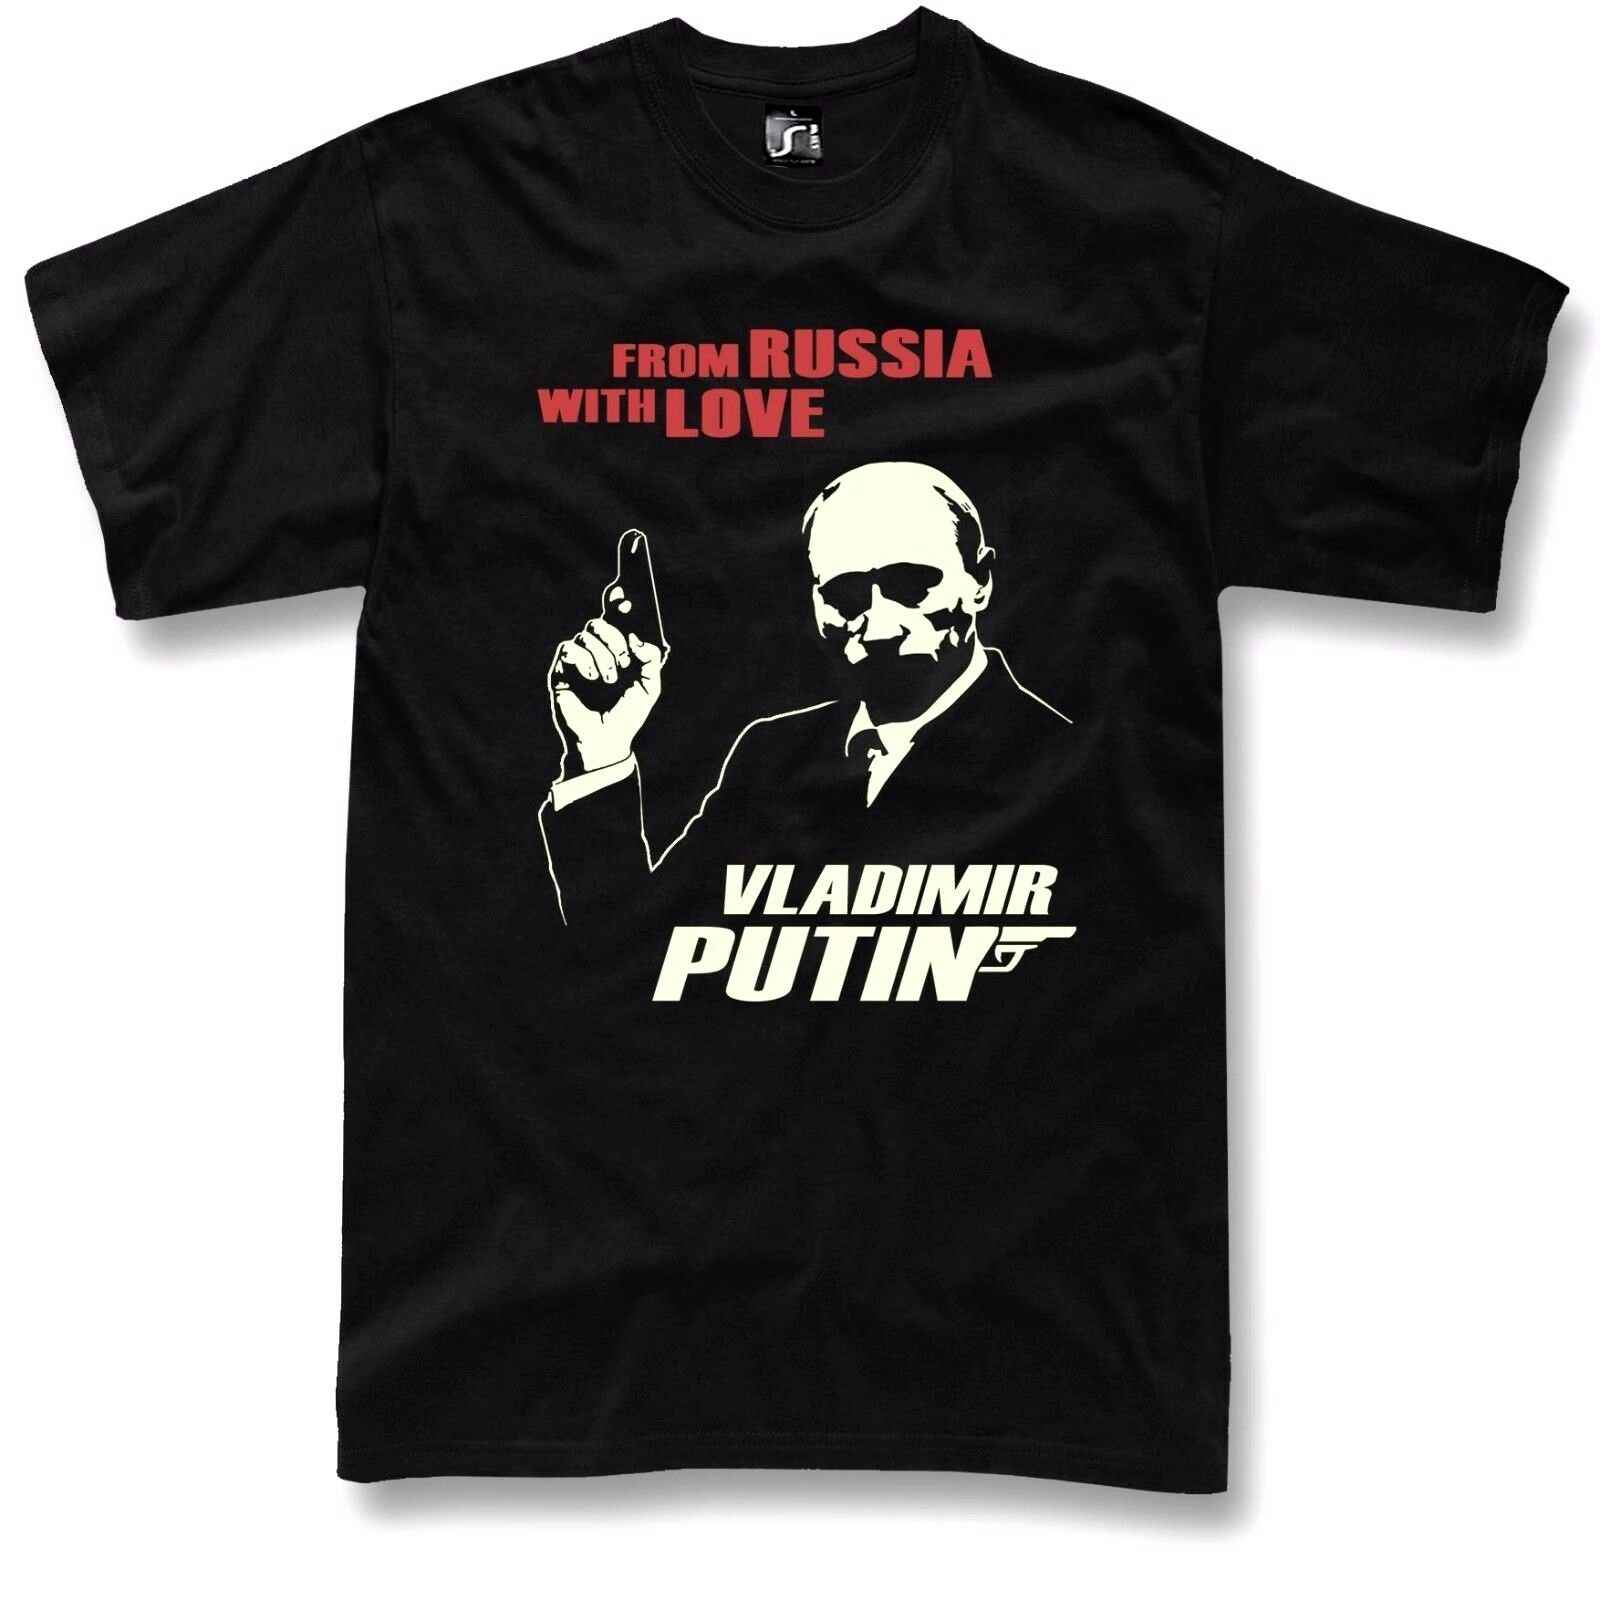 Putin T Shirt Russia James Bond 007 USSR Silver Print Black Tee S - 5XL